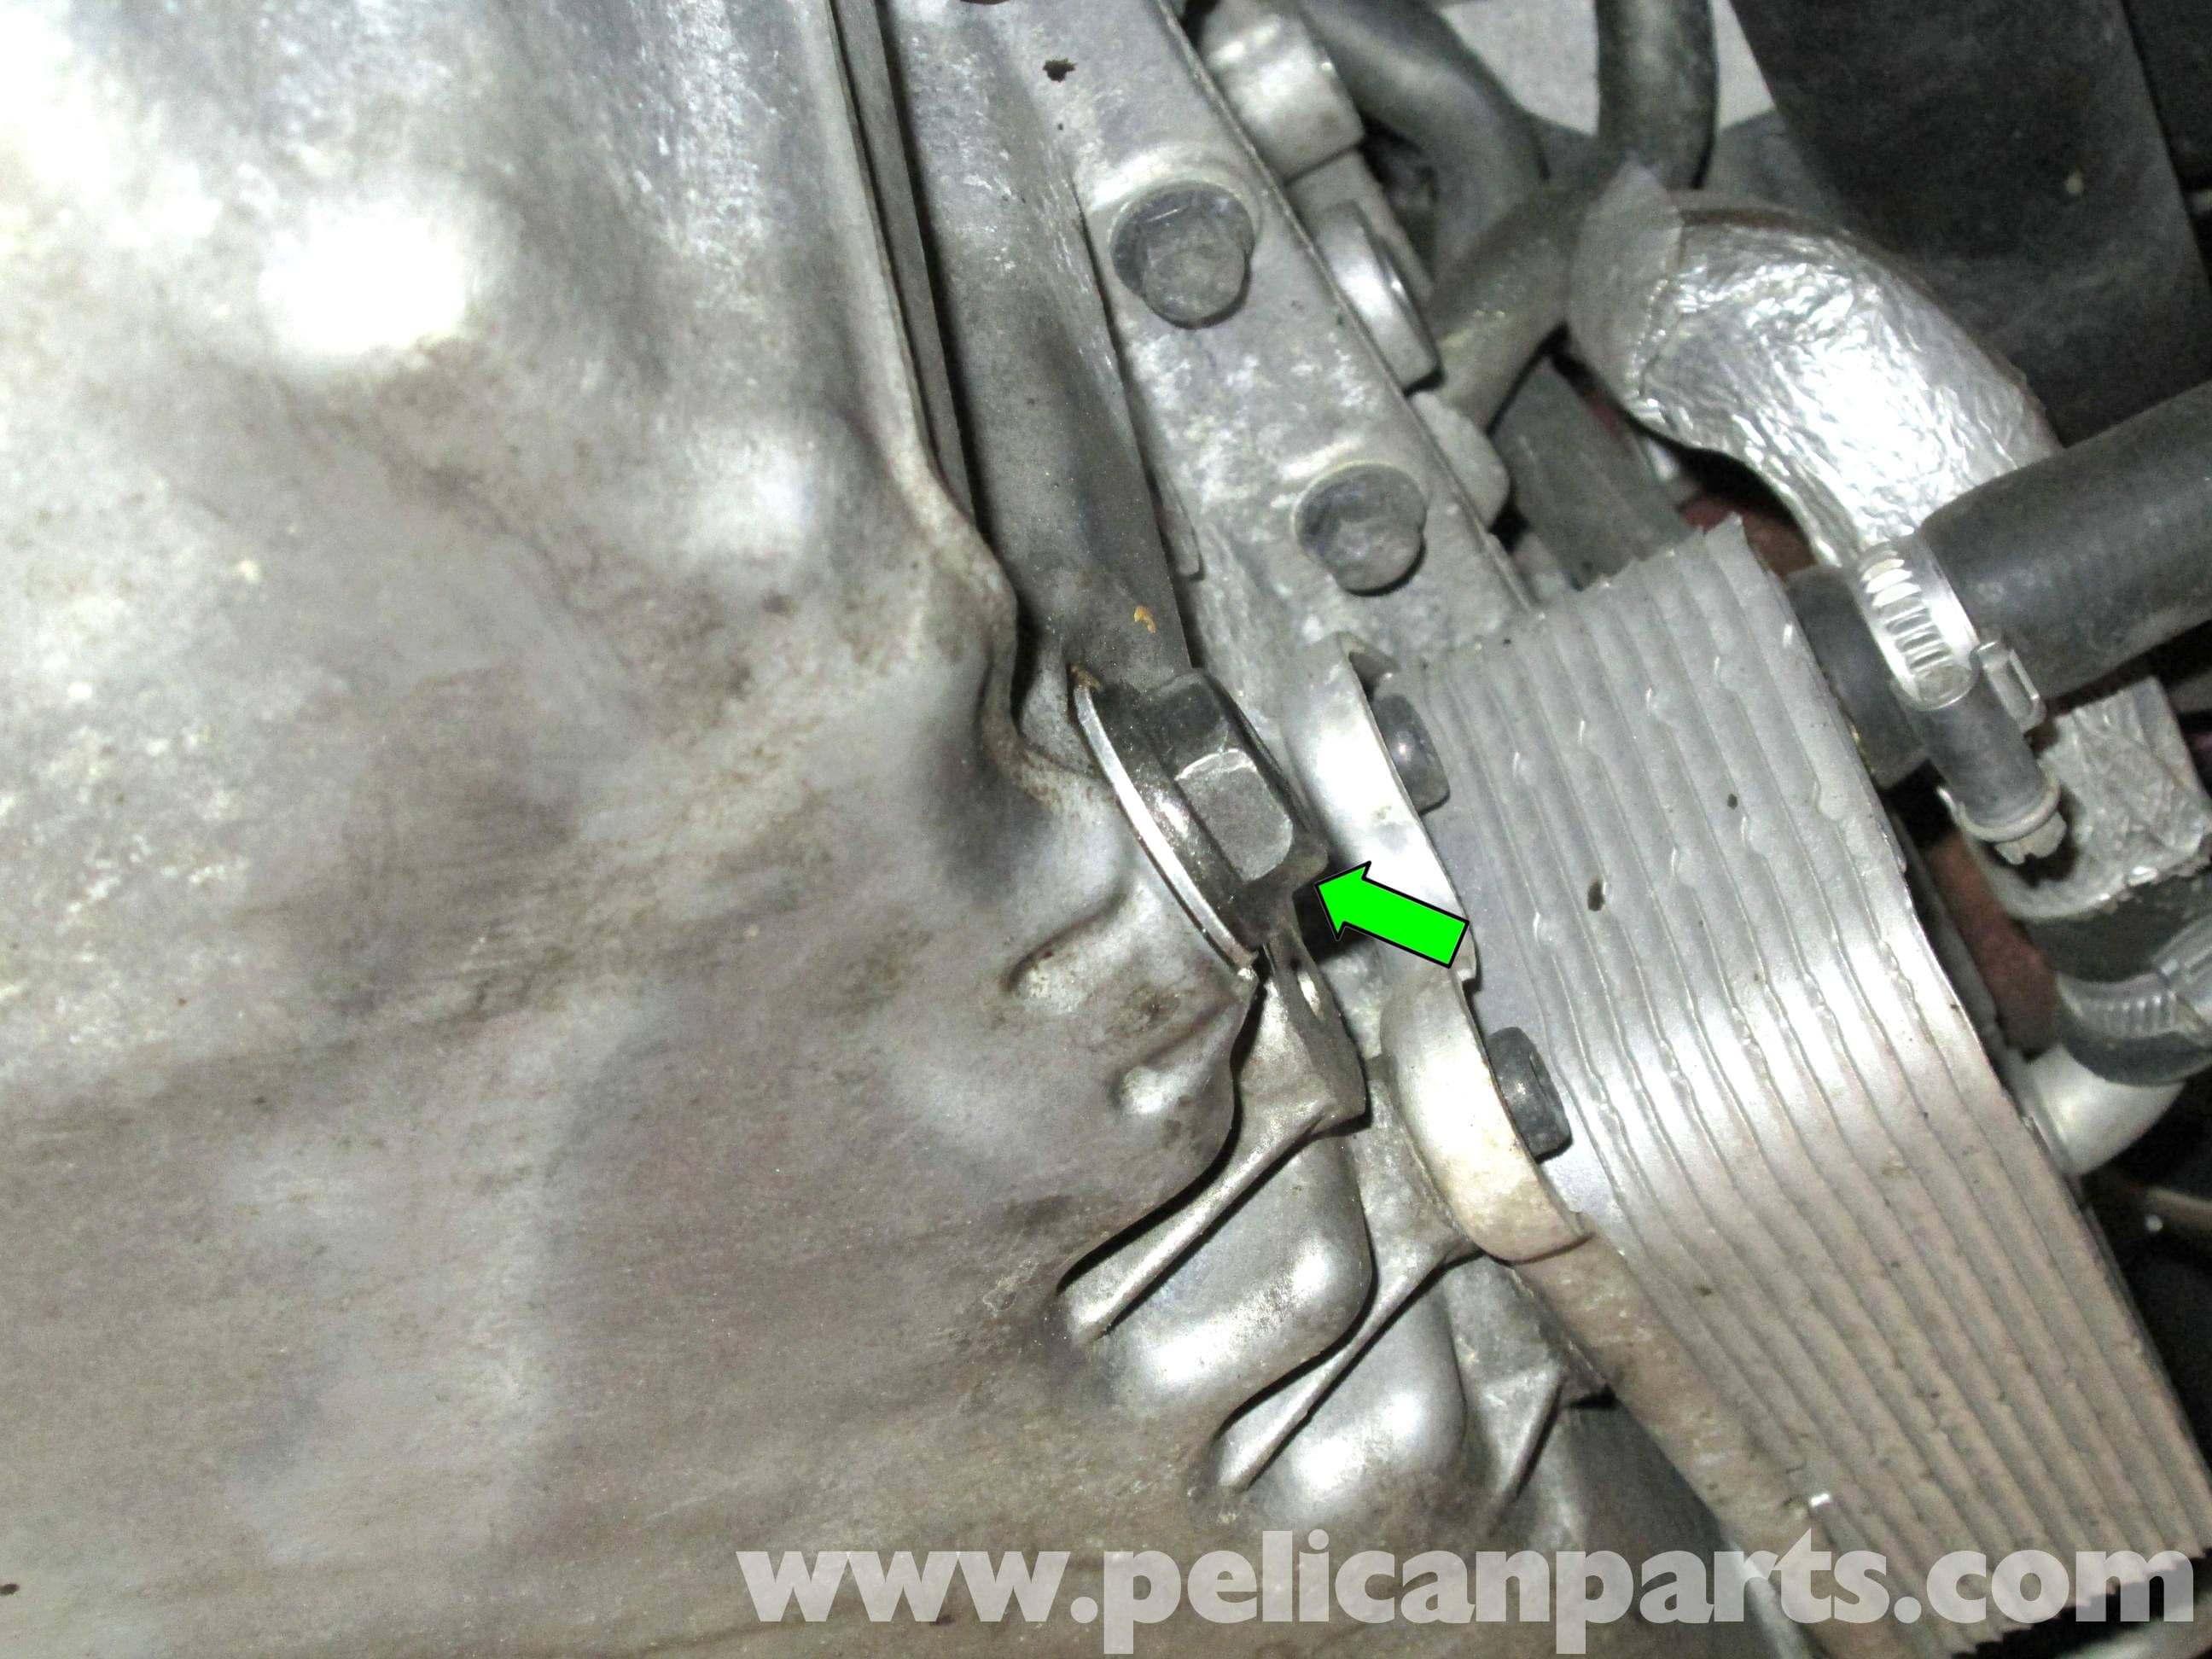 Volvo C30 Oil Change (2007-2013) - Pelican Parts DIY Maintenance Article